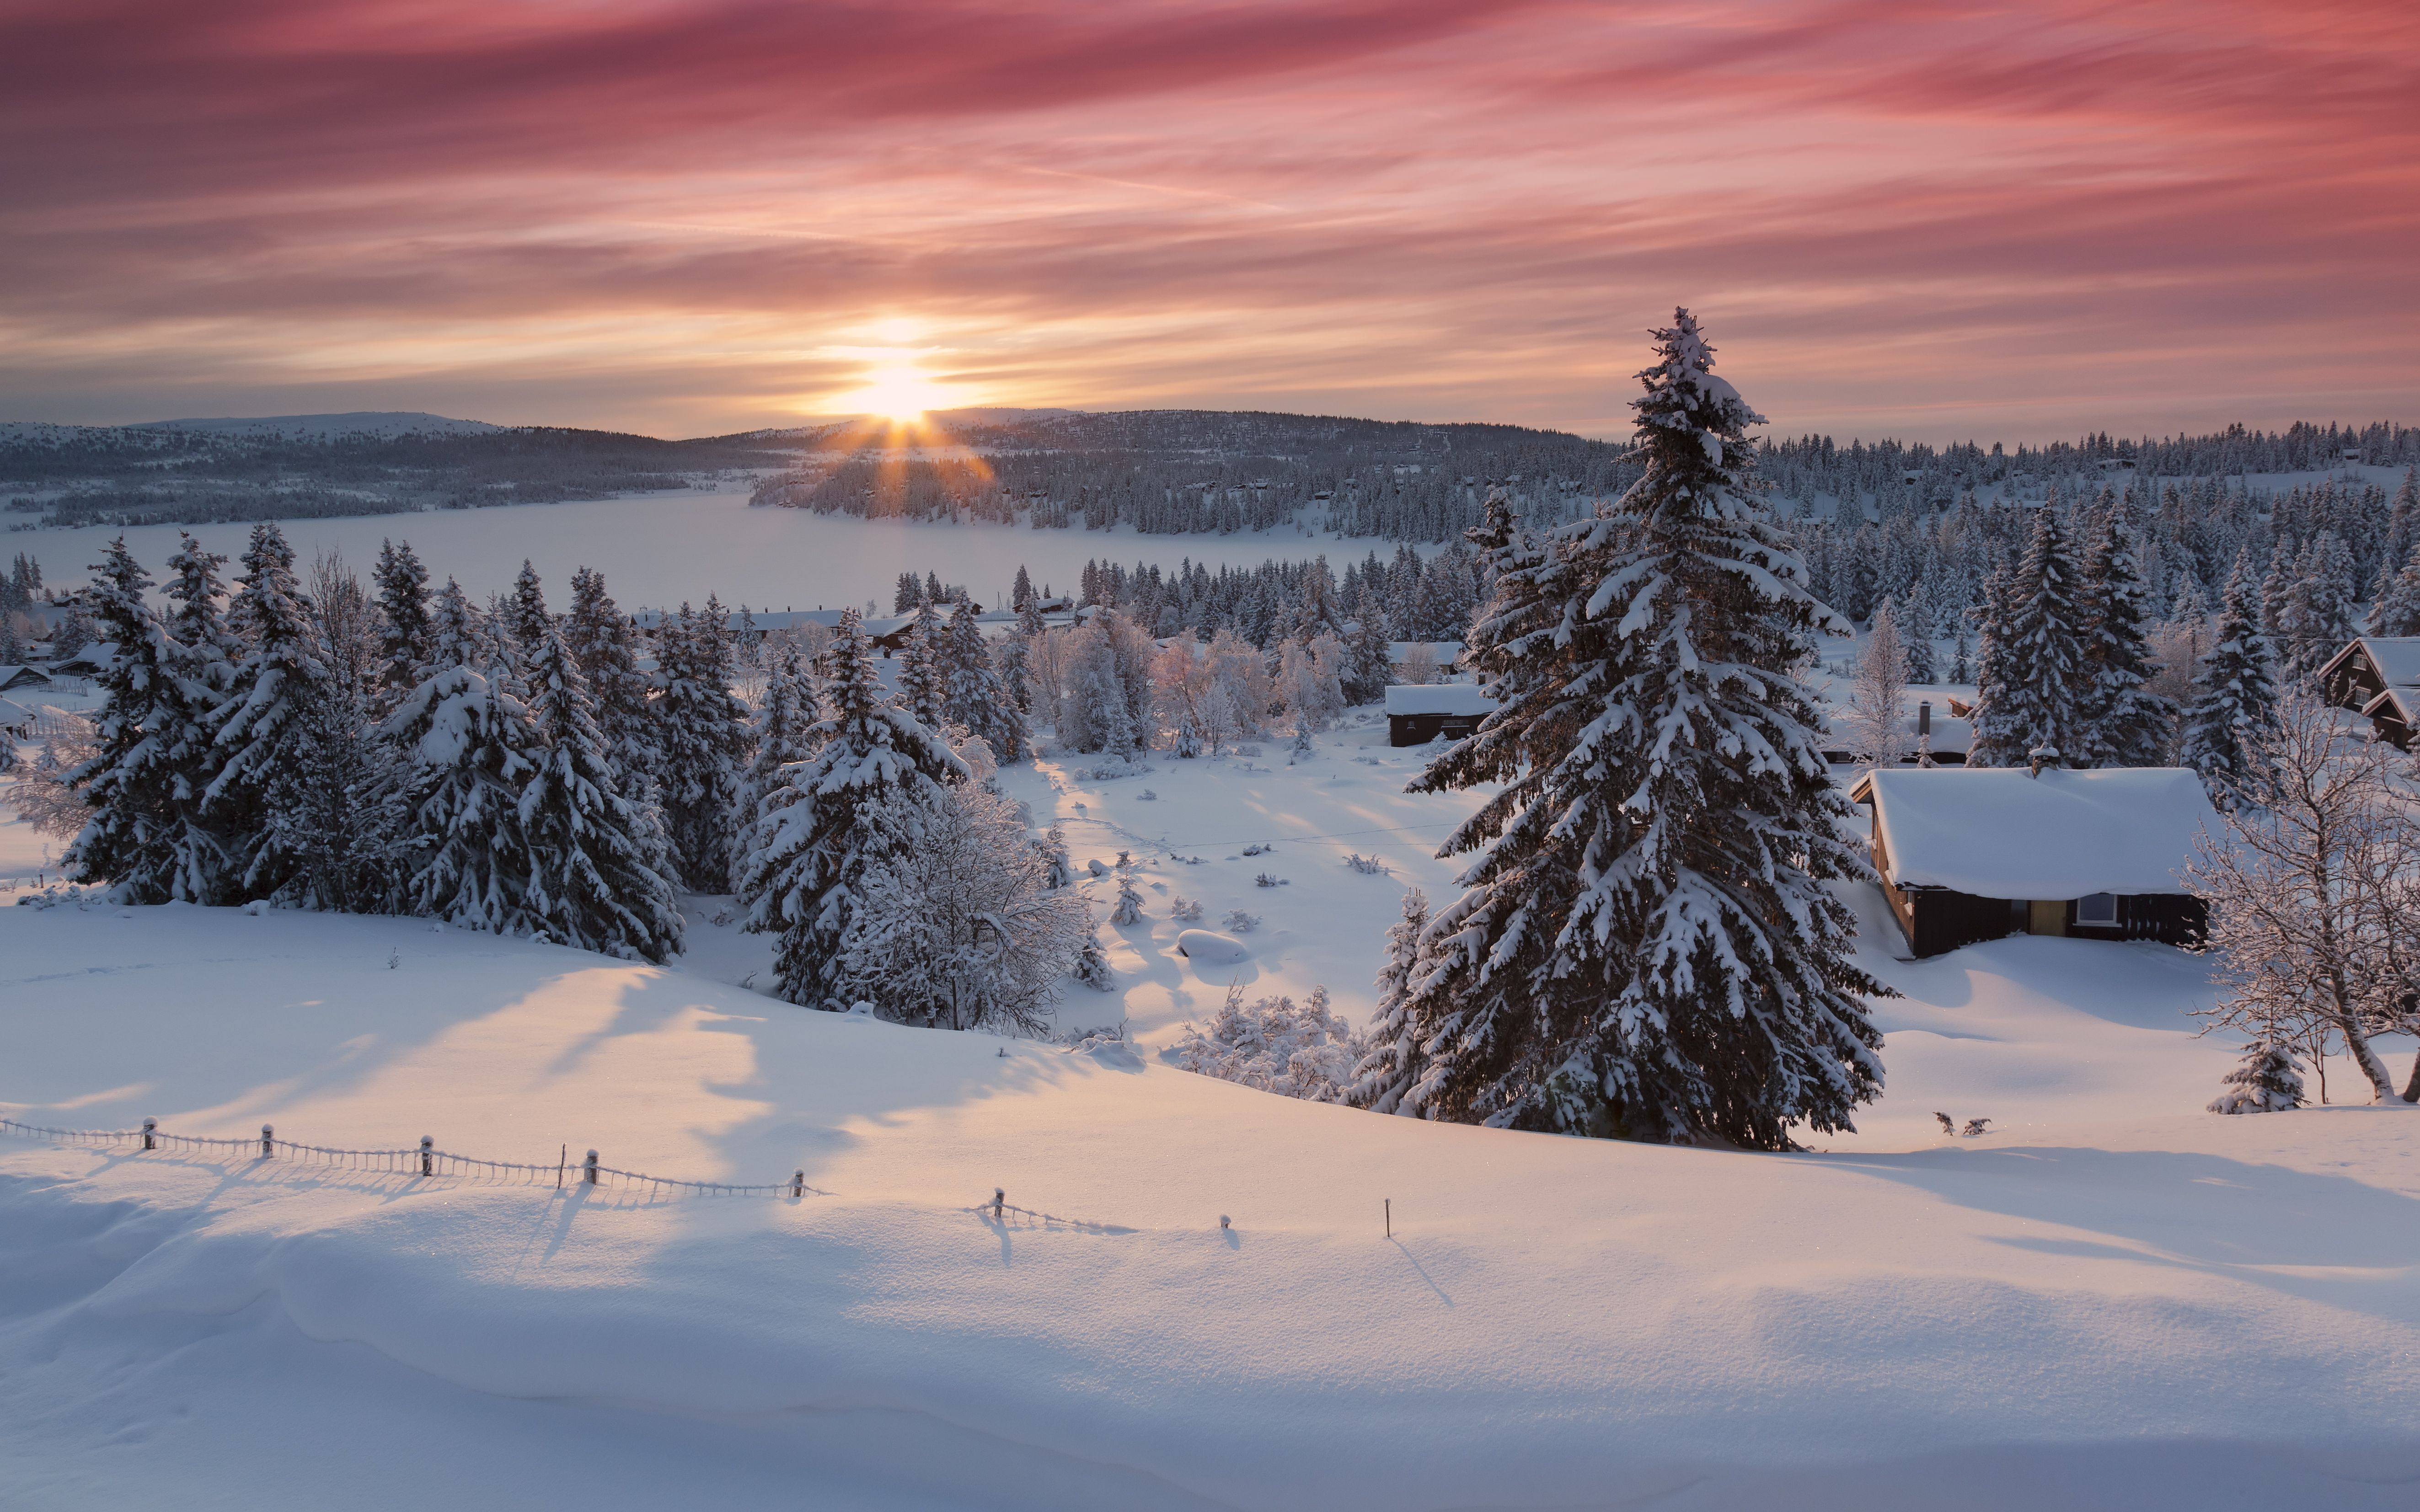 View of snow covered firs and log cabins situated on shore of Lake Lillehammer, Norway.